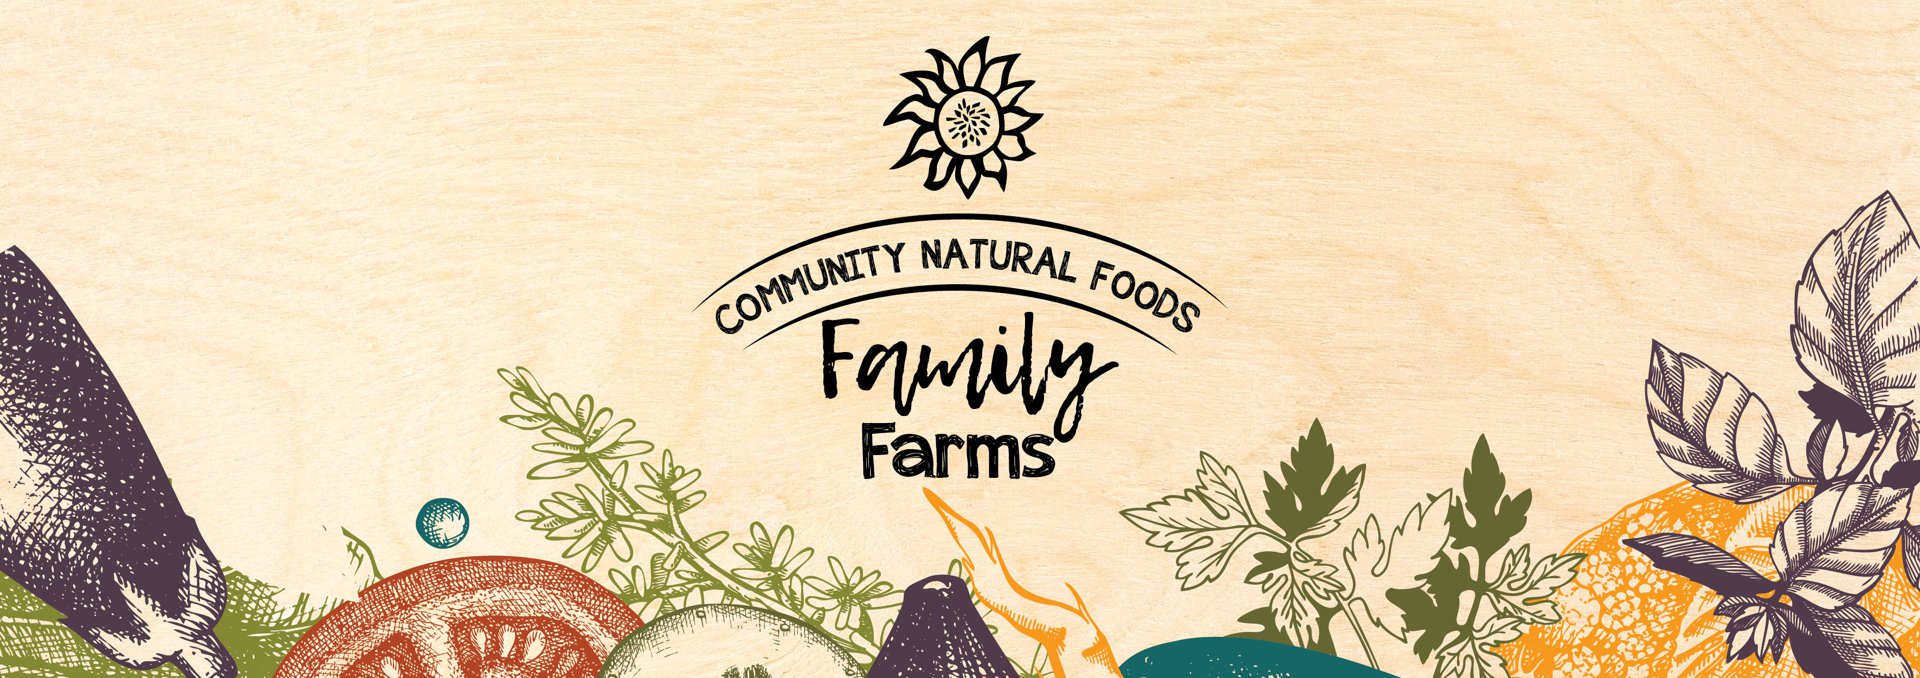 CNF Family Farms